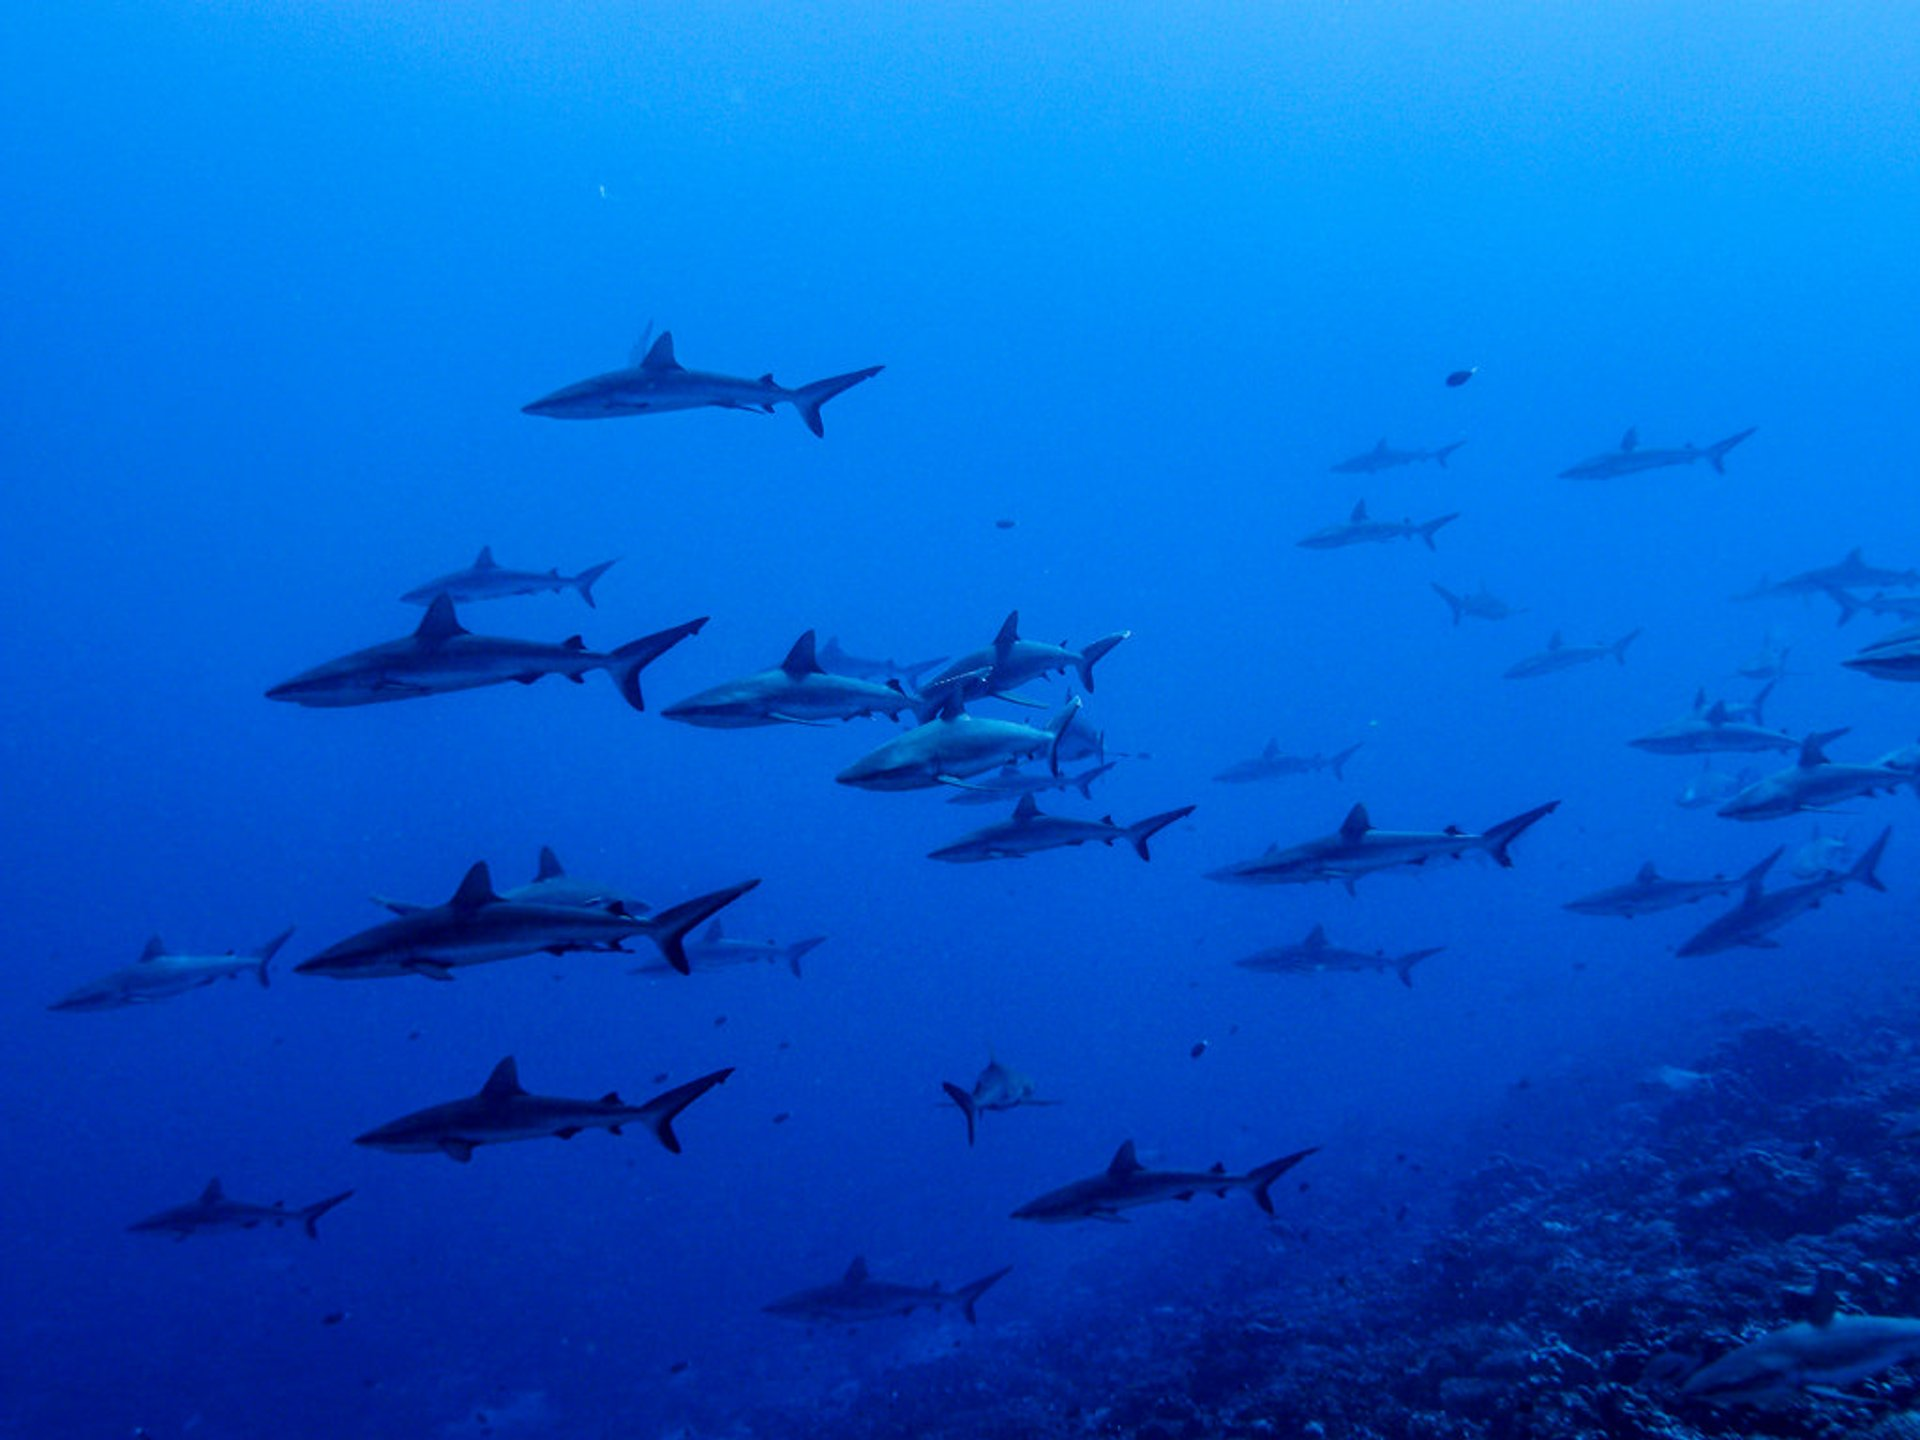 Wall of Sharks in French Polynesia - Best Time